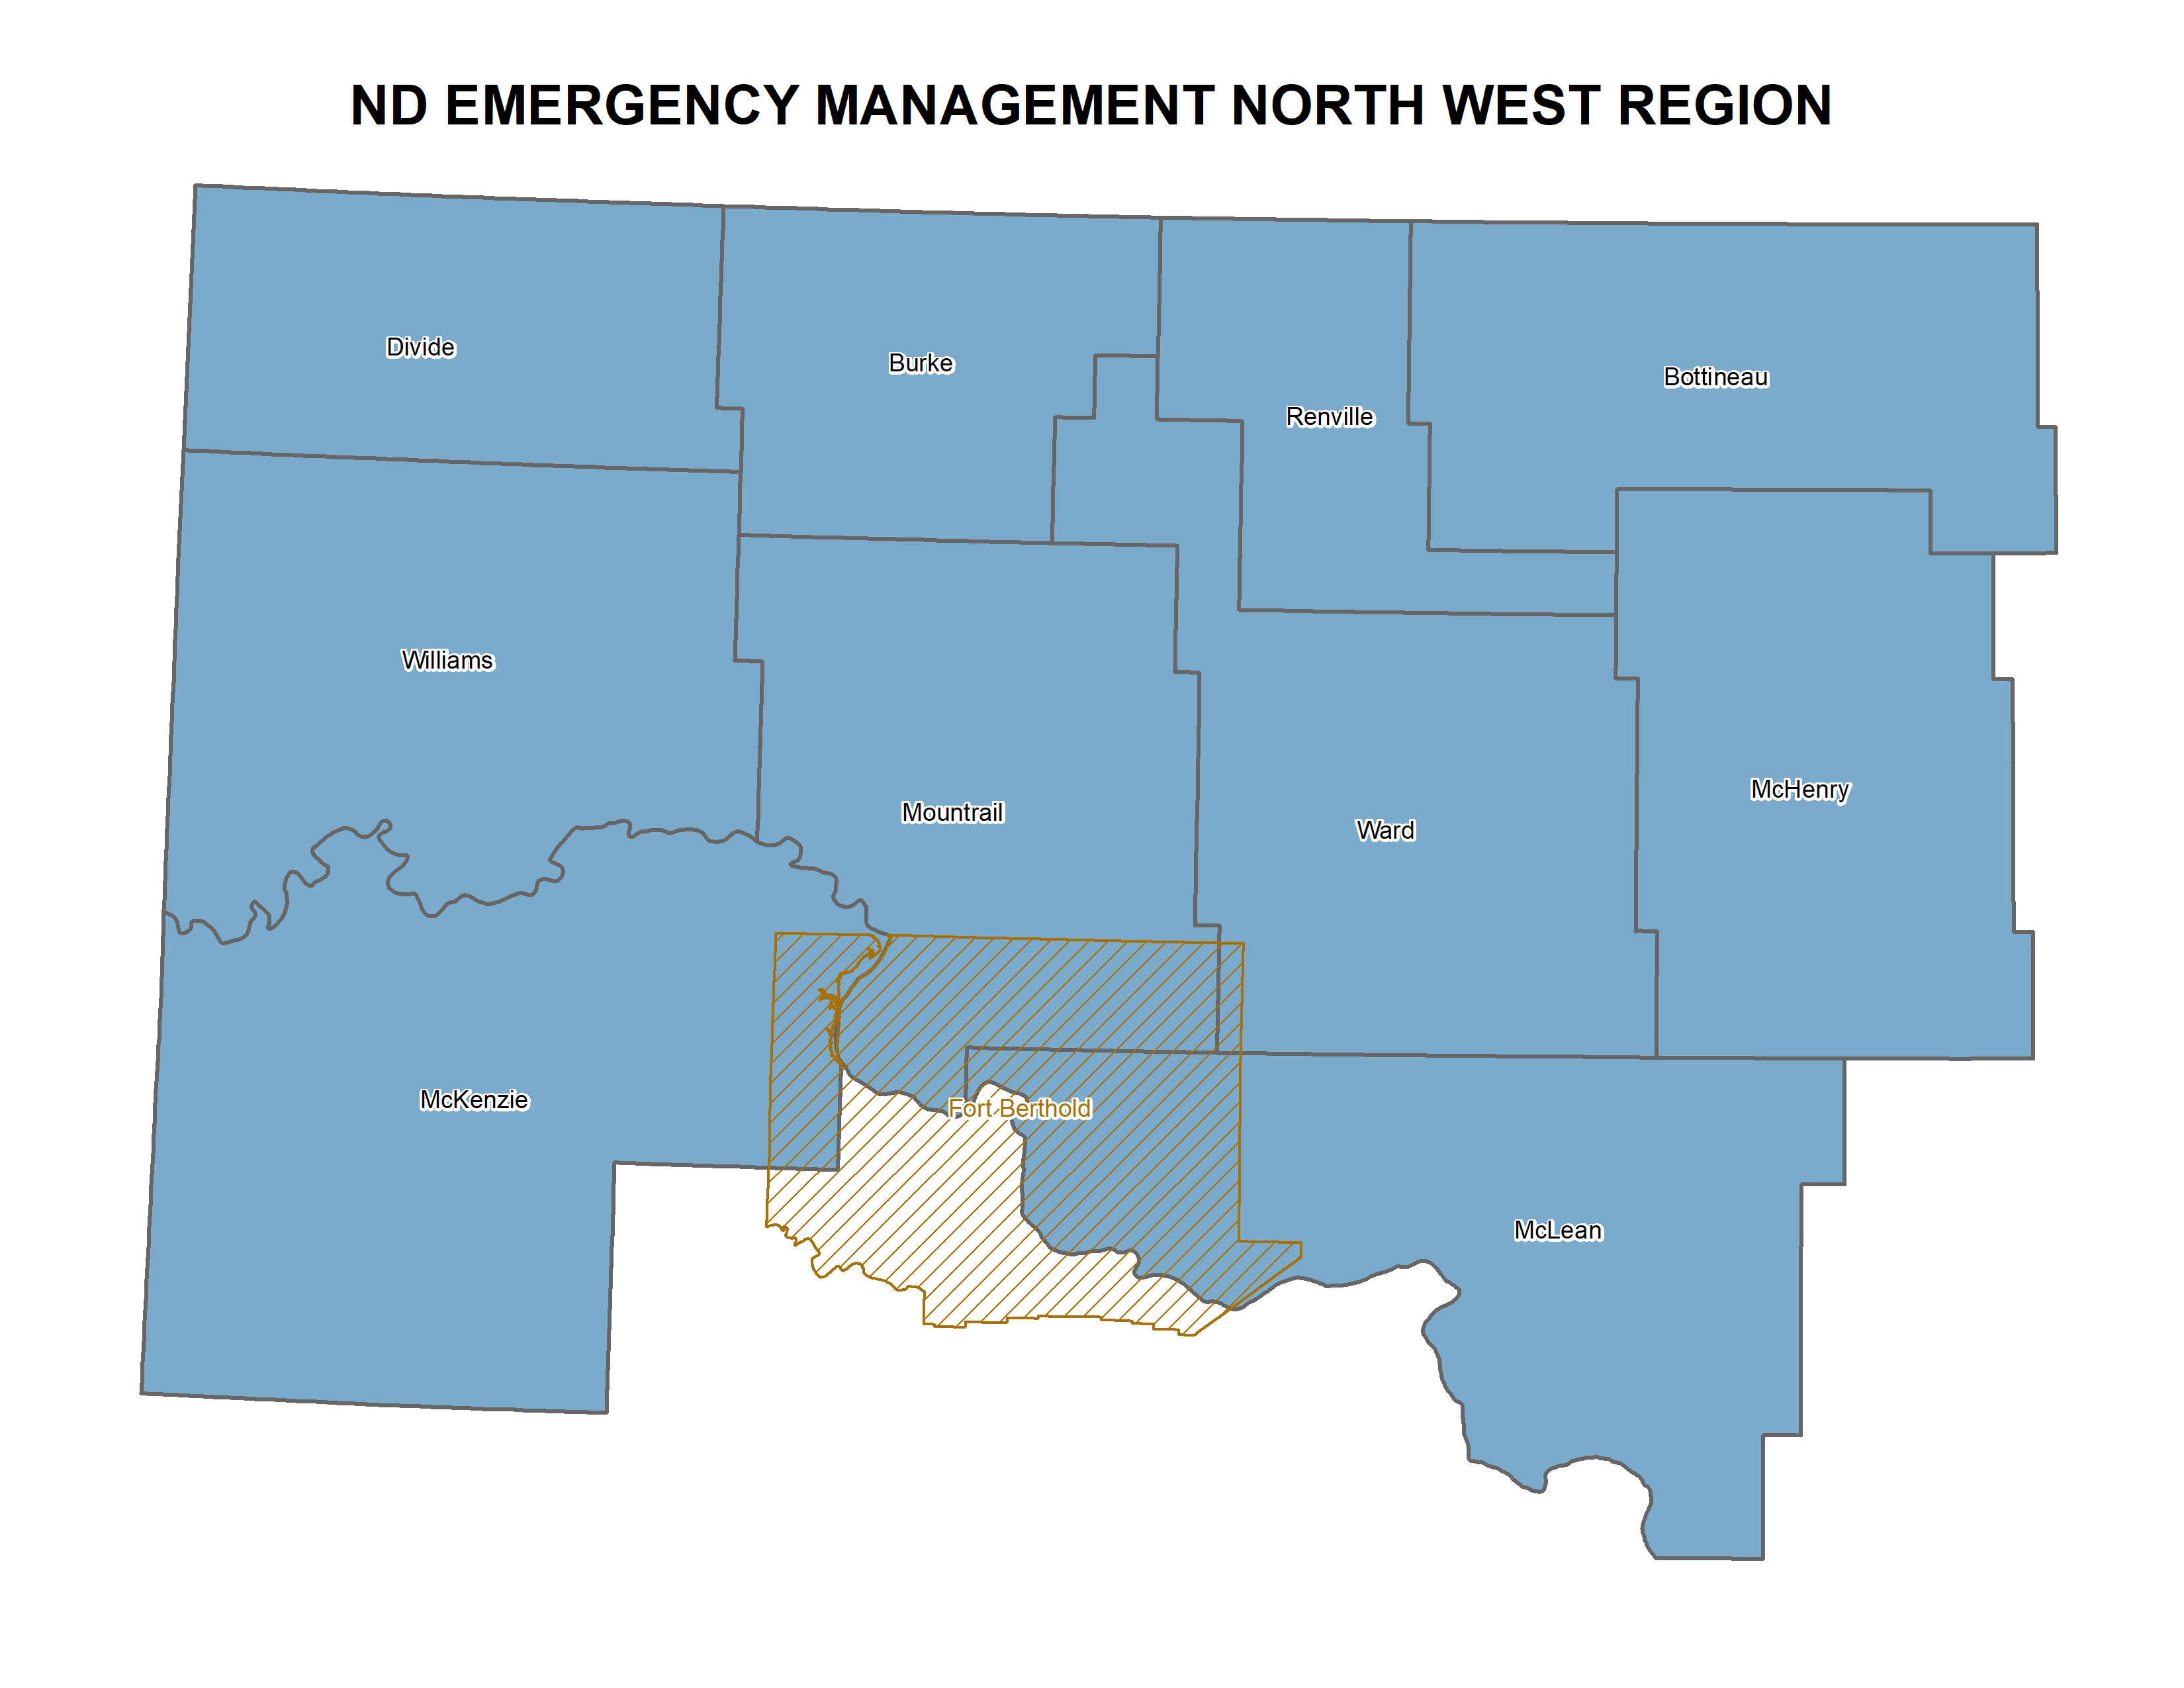 Northwest ND Region